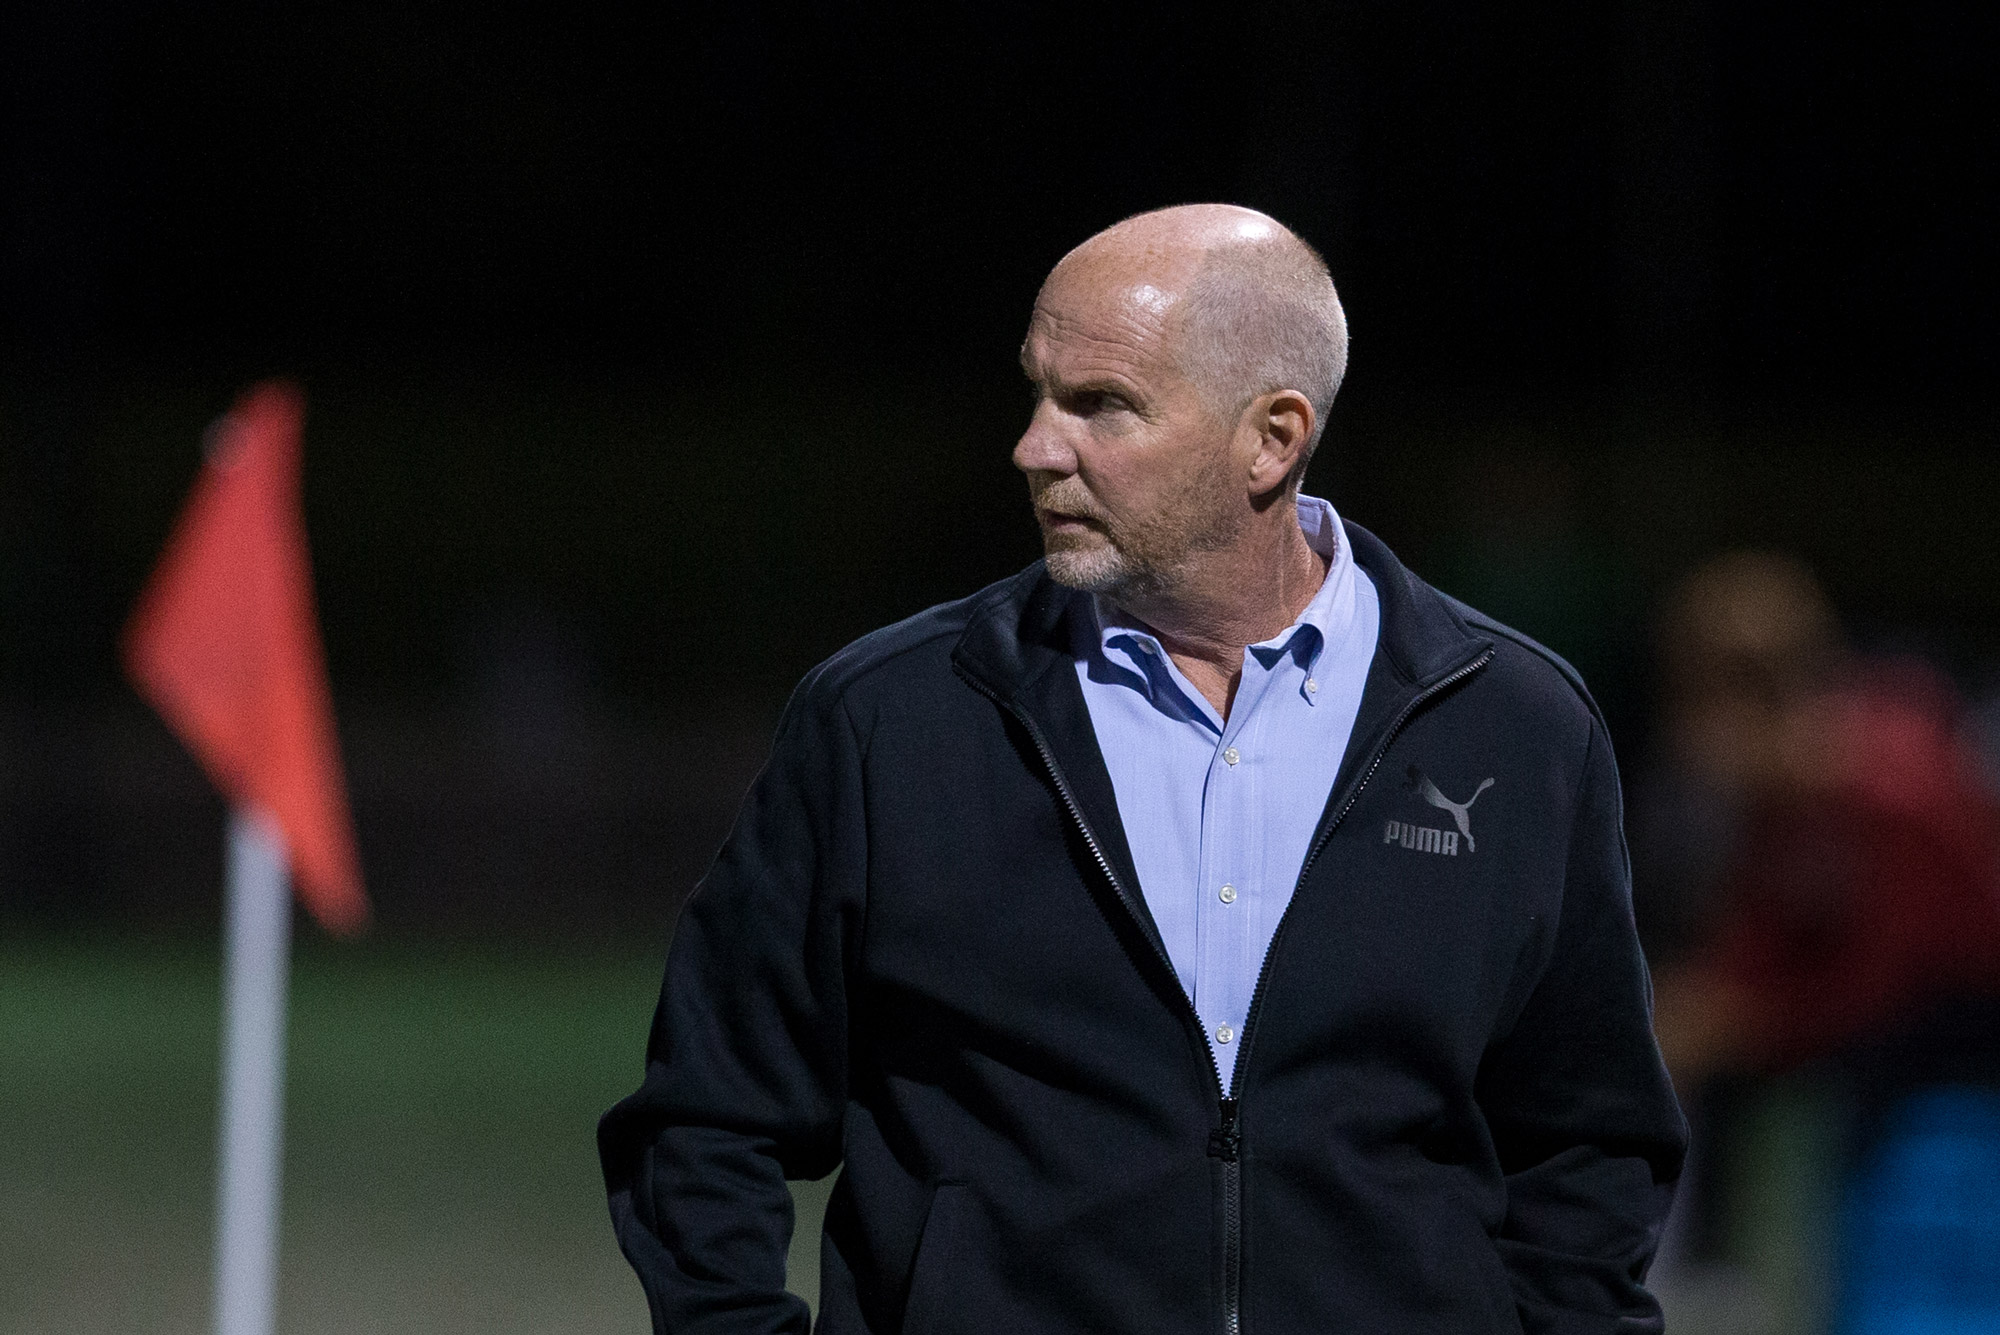 a photo of Neil Roberts, BU Men's Head Soccer Coach, on the field